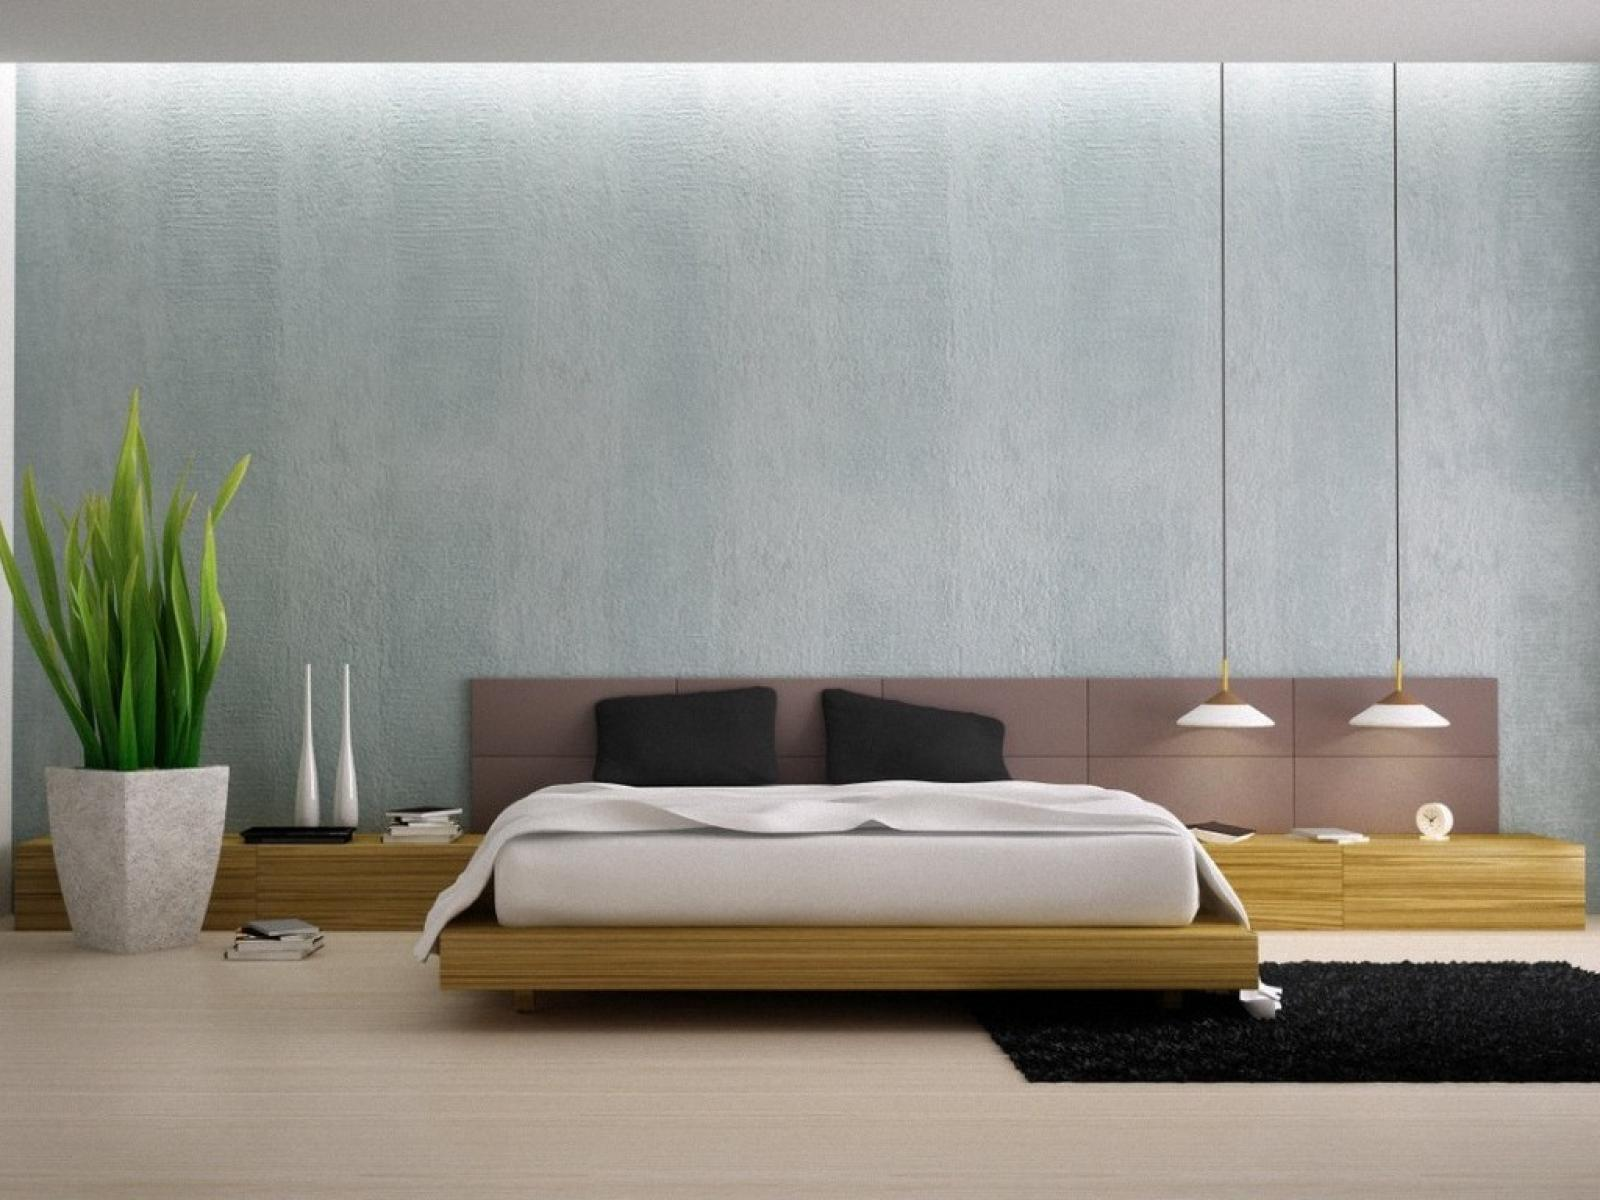 minimalist interior design wallpapers and stock photos - Wall Paper Interior Design